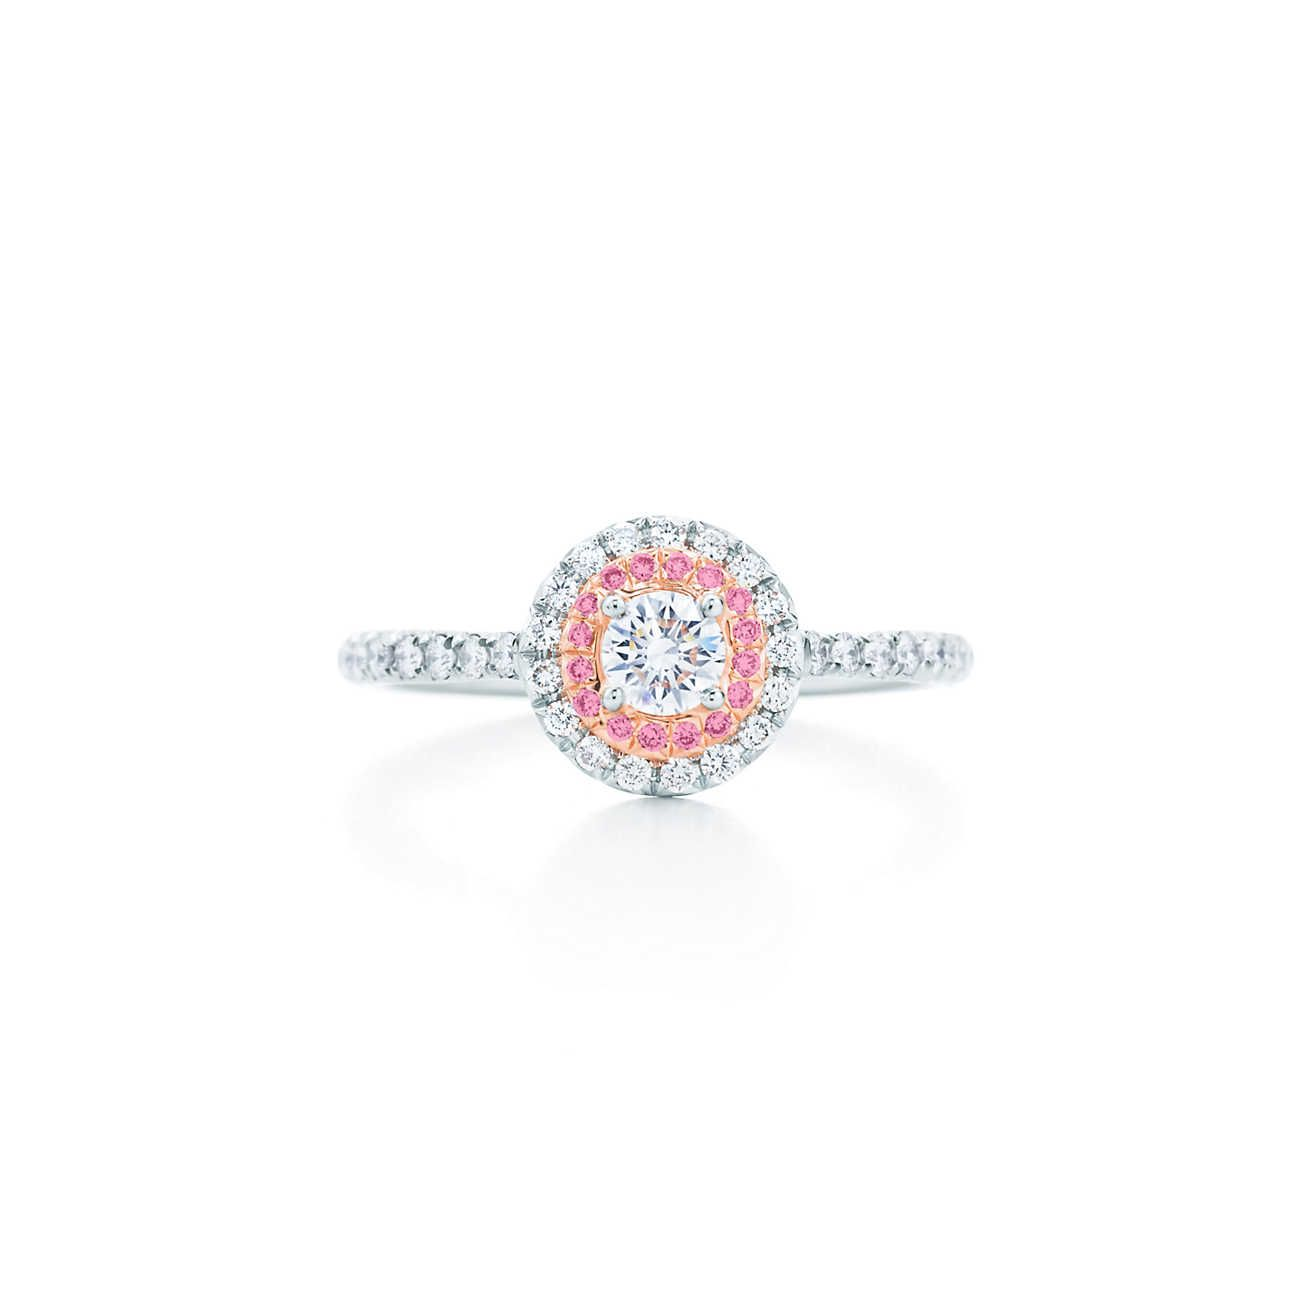 bb3eee2b4 Tiffany Soleste® ring in platinum and rose gold with Fancy Vivid Pink  diamonds.